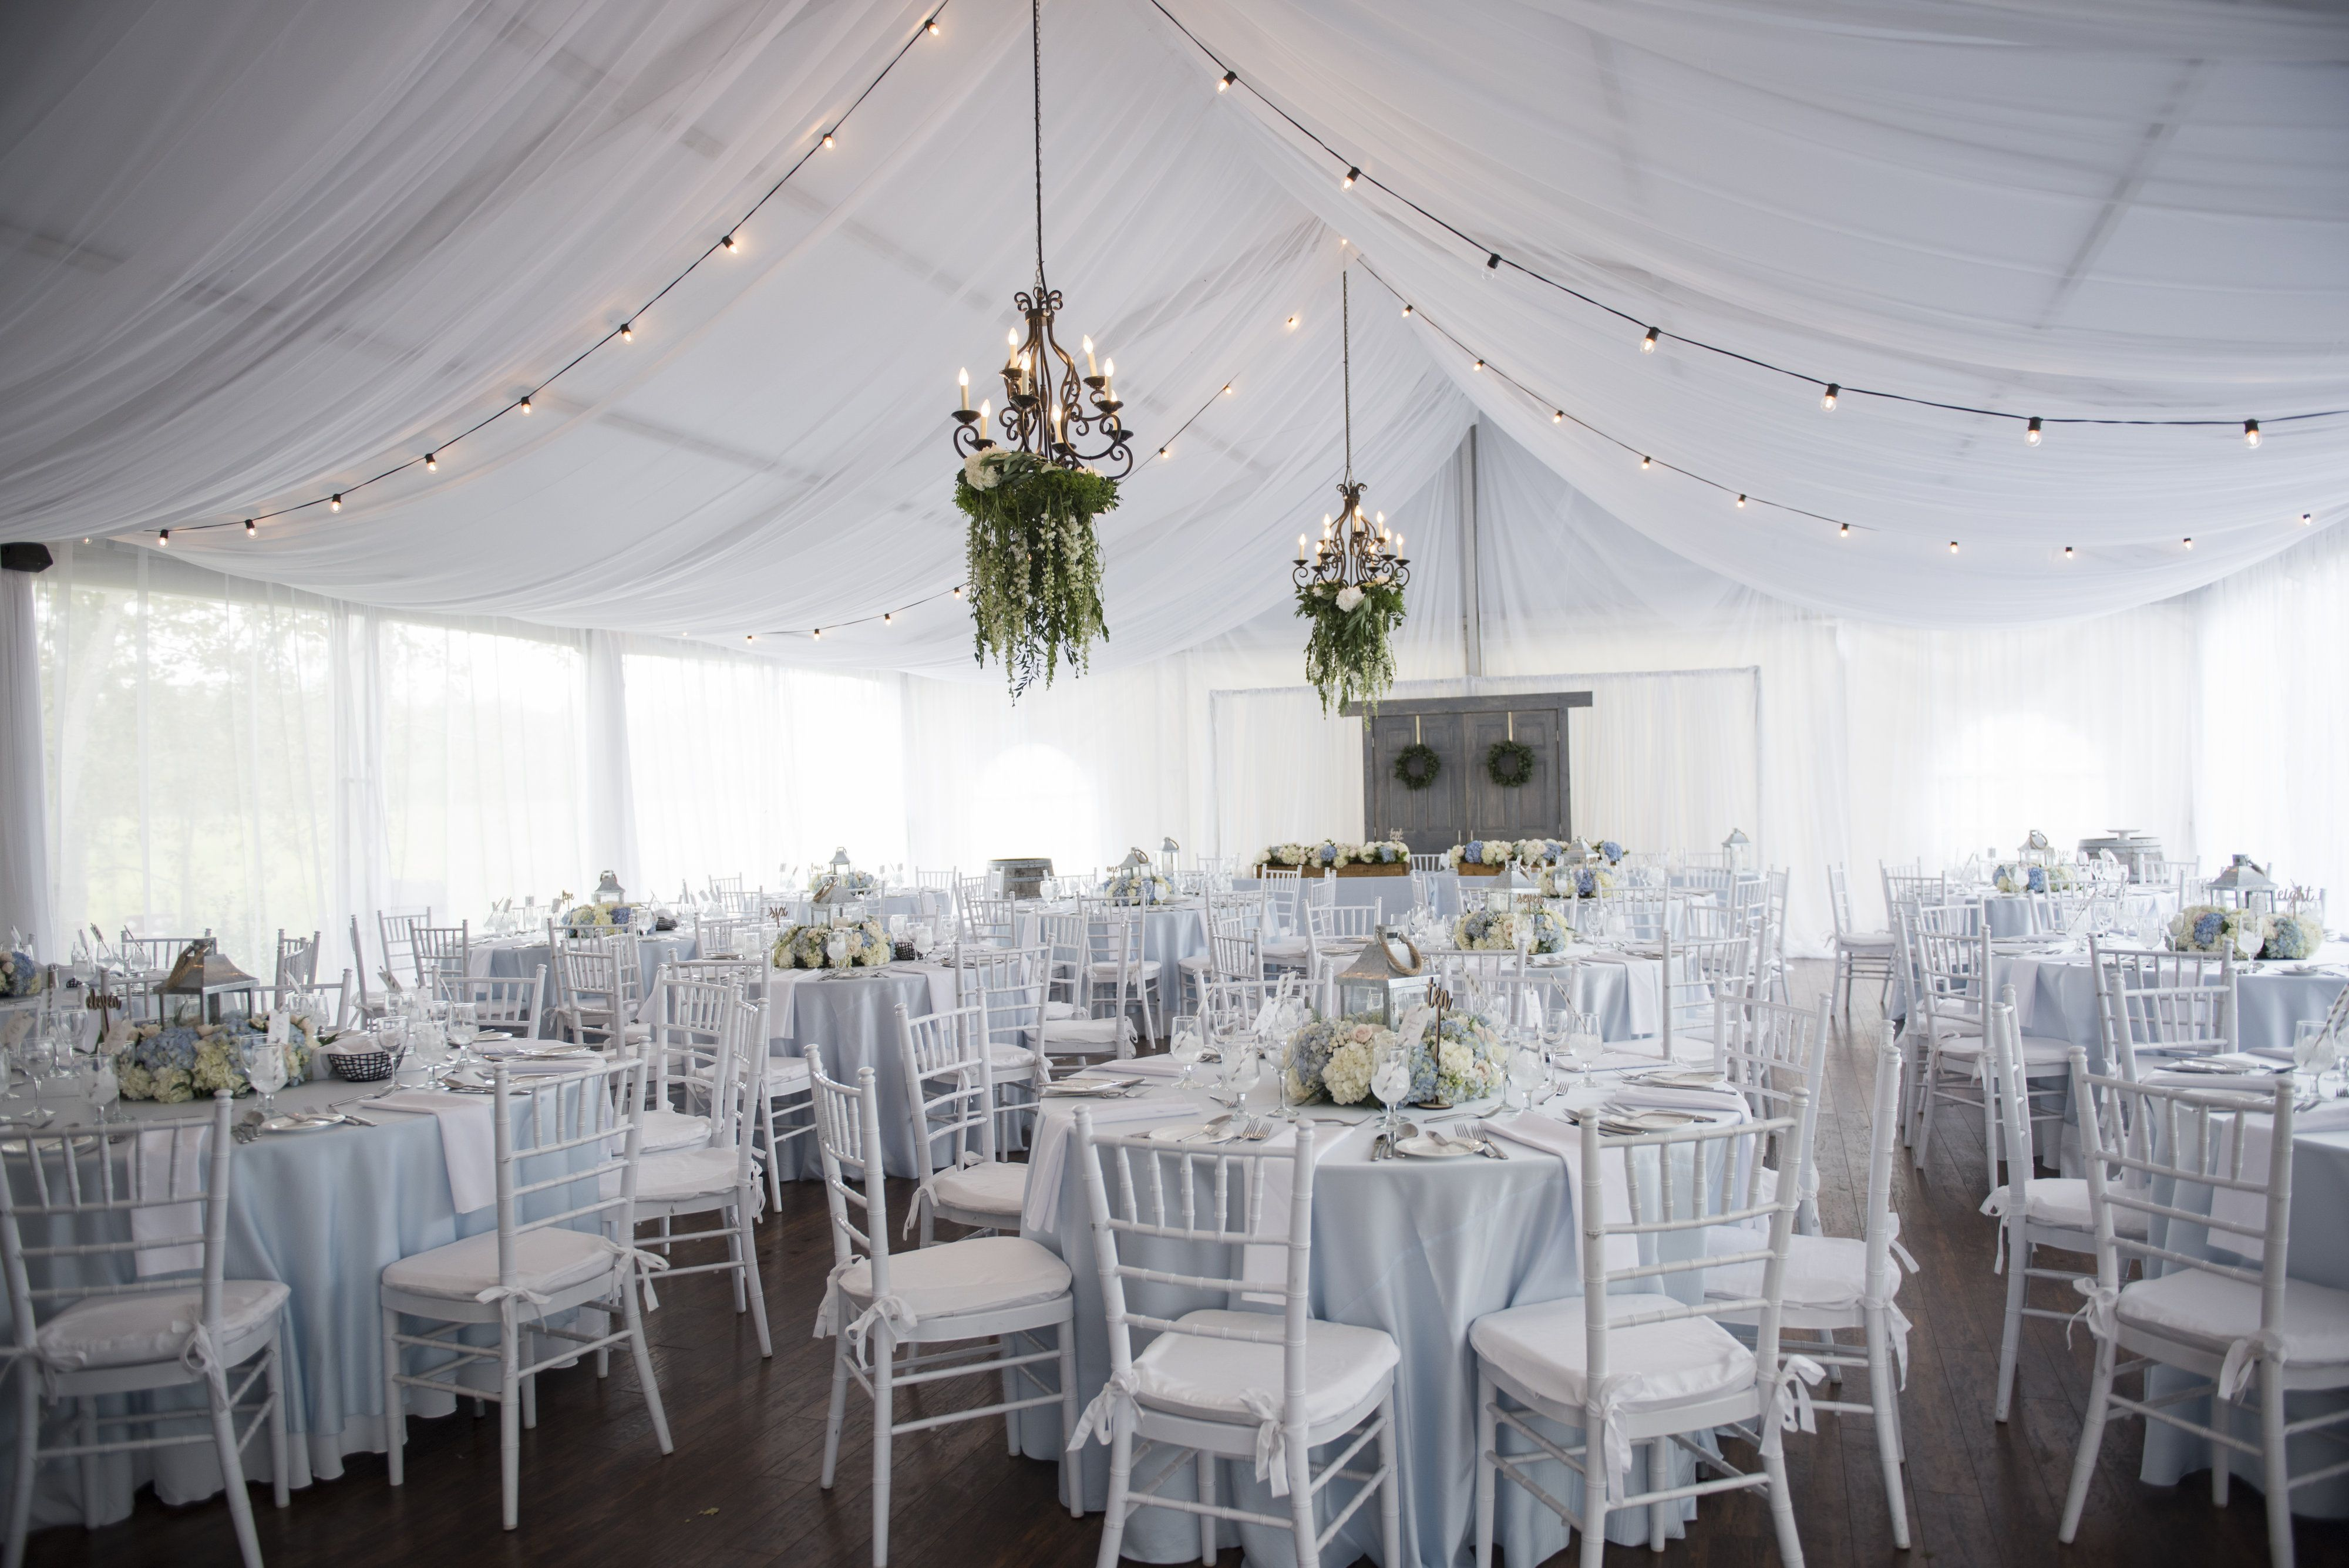 A tented wedding with floral chandeliers in fish creek provincial a tented wedding with floral chandeliers in fish creek provincial park calgary alberta aloadofball Choice Image